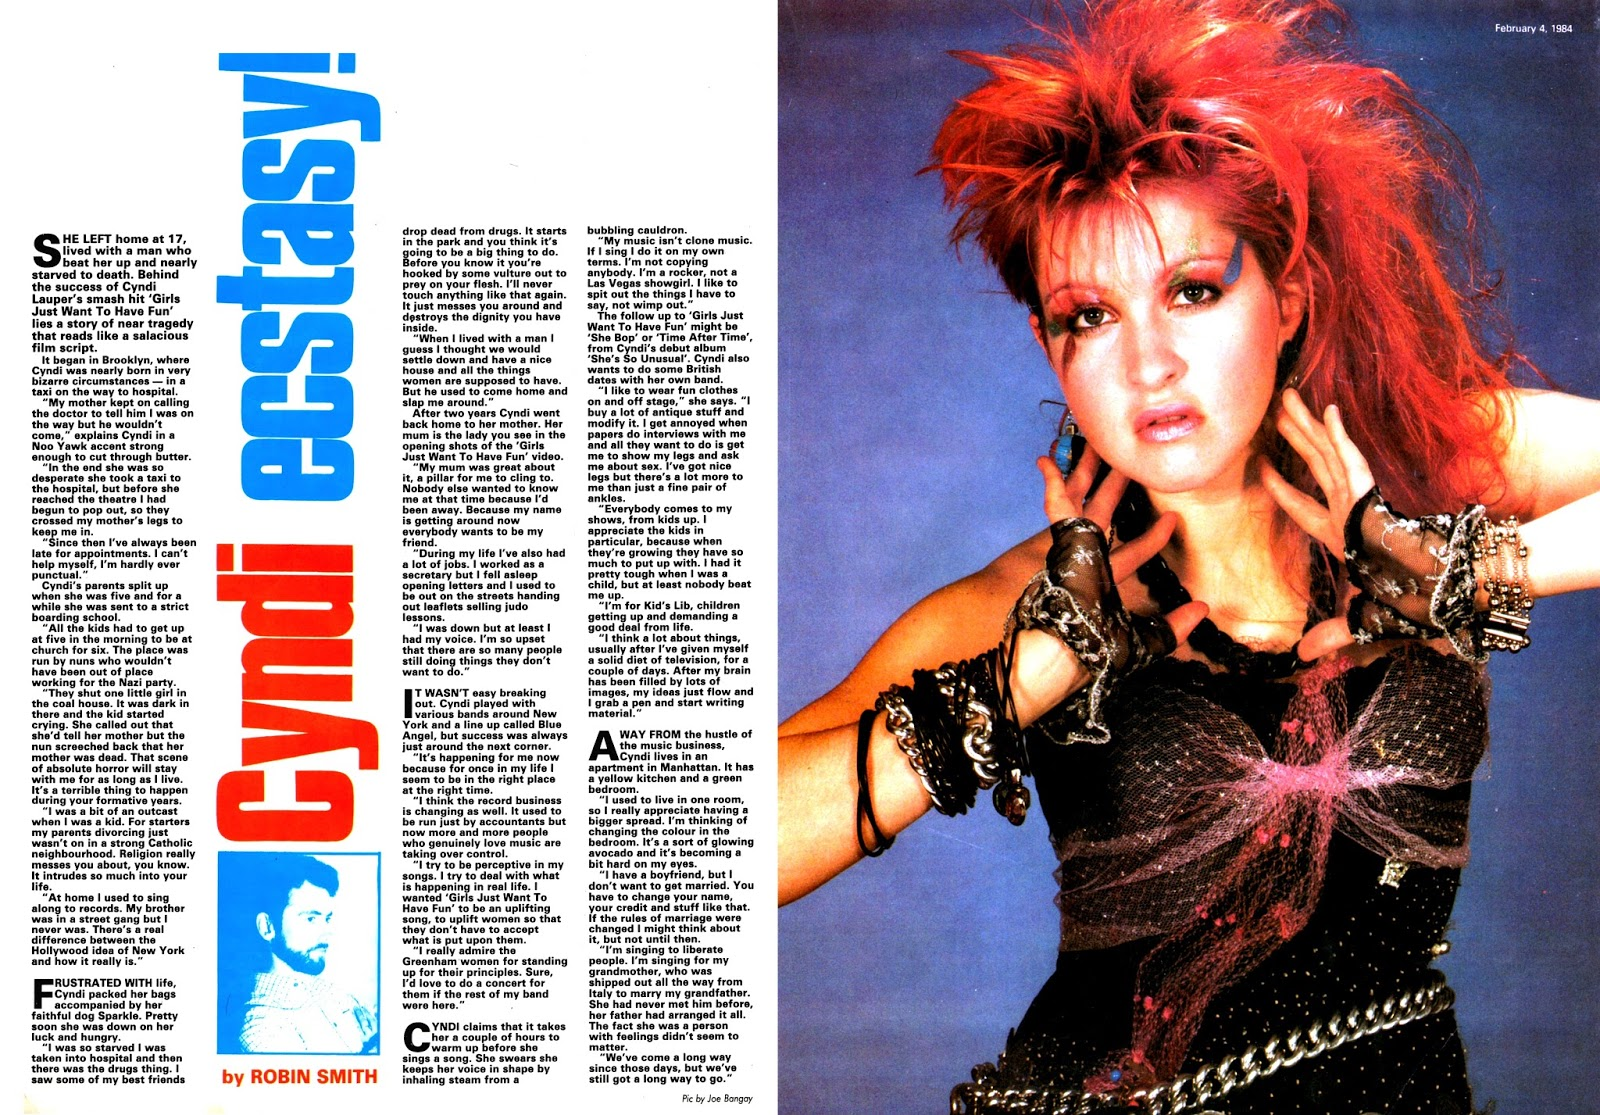 unhook the stars lyrics cyndi lauper 2003年4月23日 true colors 作詞:steinberg kelly 作曲:steinberg kelly ° ∵。 true colors∵~☆ 。 ☆lyrics/music:steinberg kelly° ∵。∵~. ☆artist:cyndi lauper° ∵。∵~☆. you with the sad eyes don't be discouraged oh i realize it's hard to take courage in a world full of people you can lose sight of it all and the.